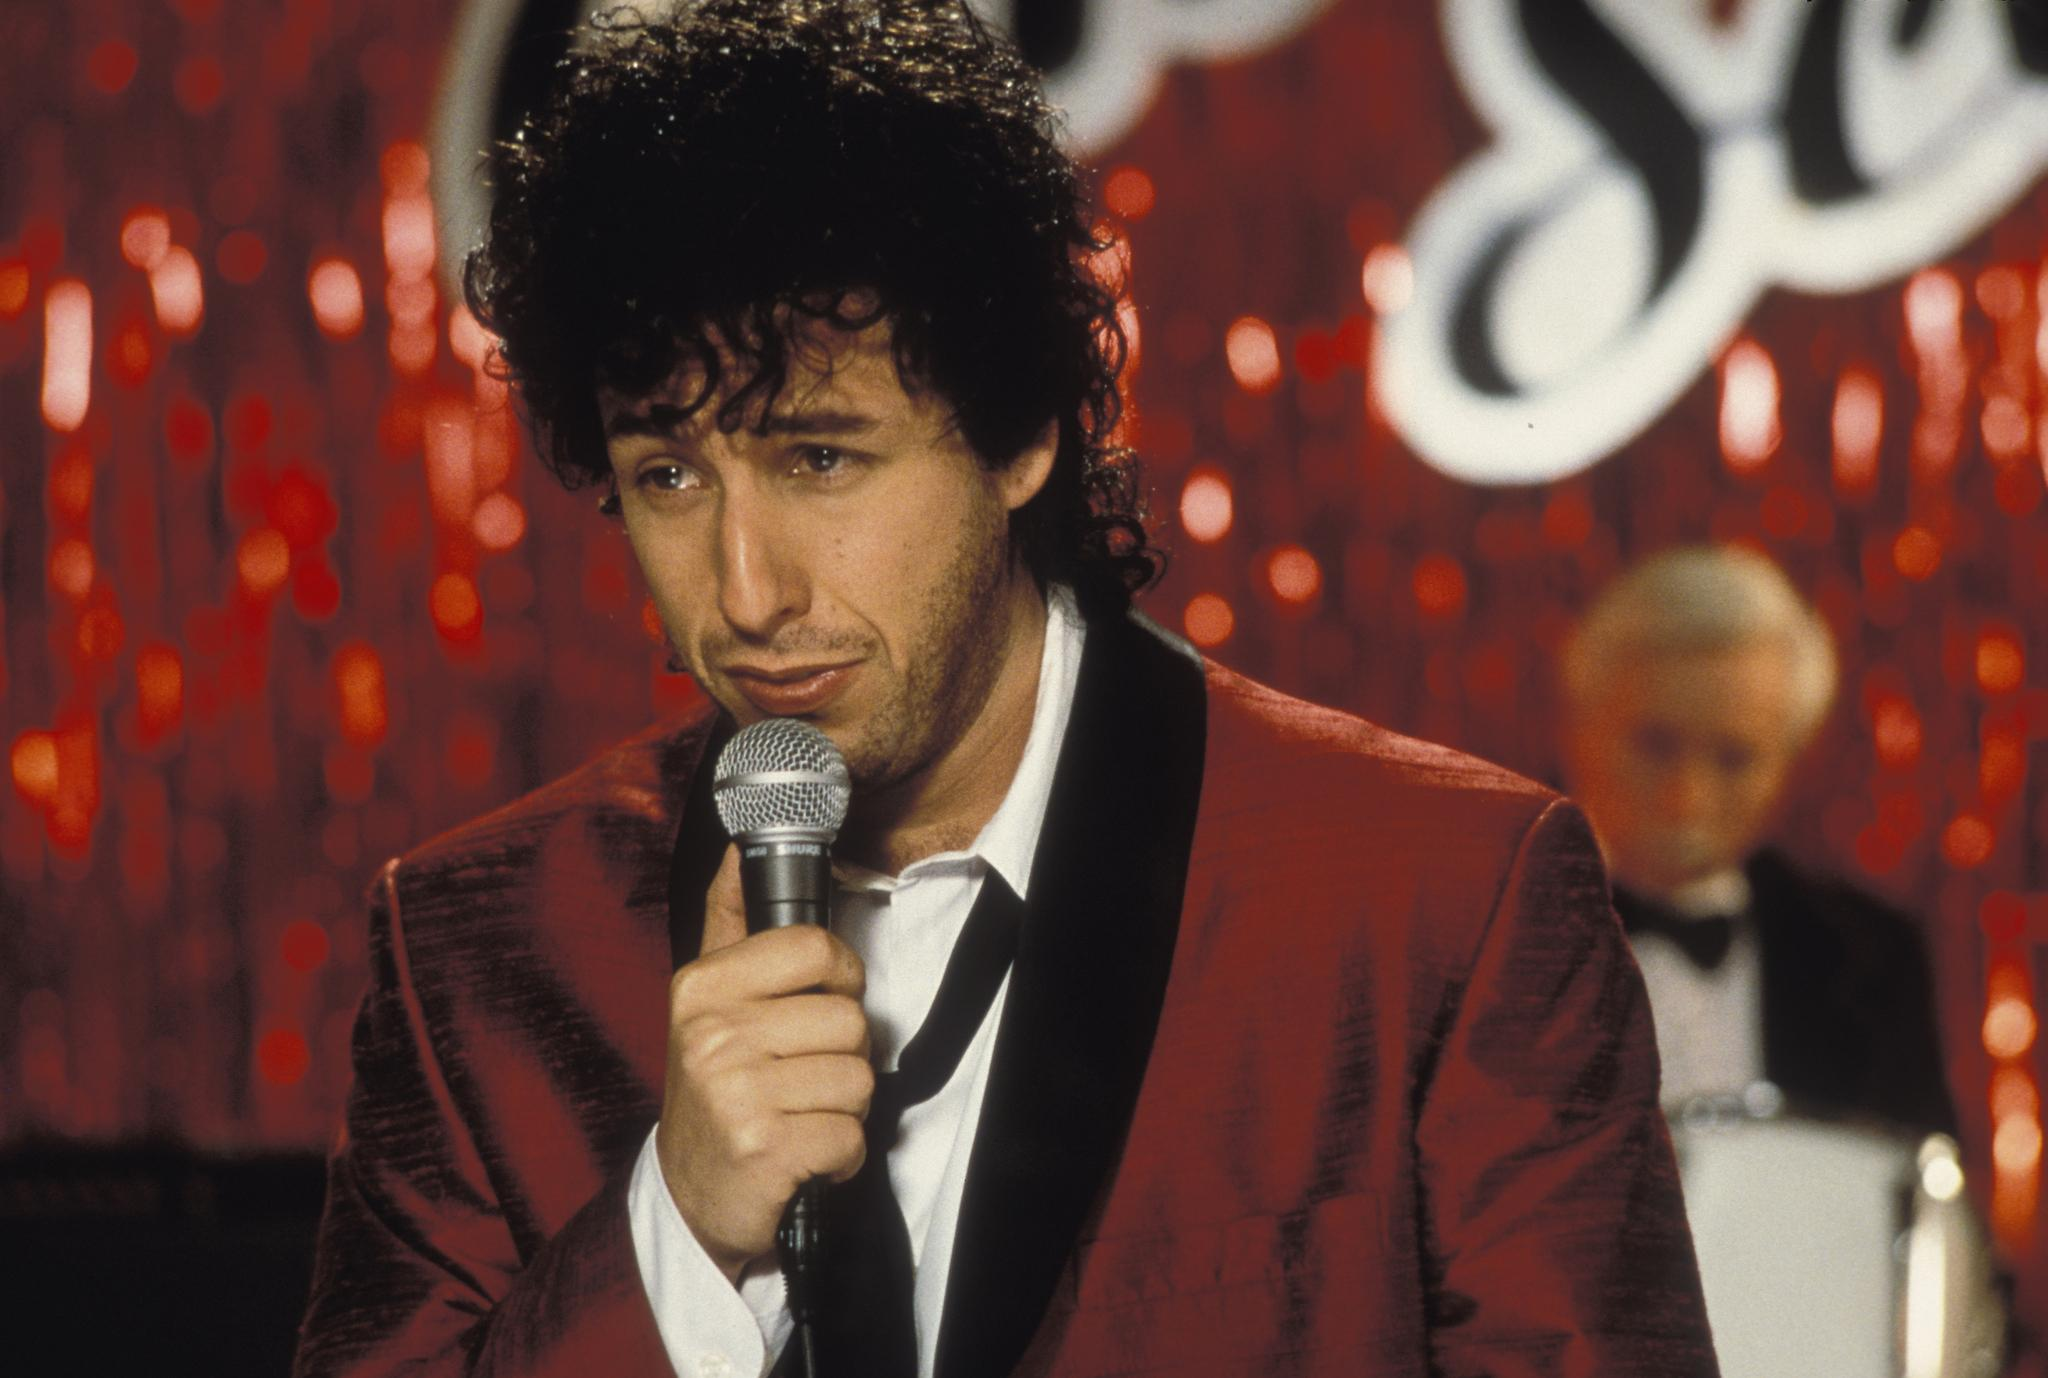 Wedding Singer Quotes Funny Movie And Scenes That Will Get You Through The Week